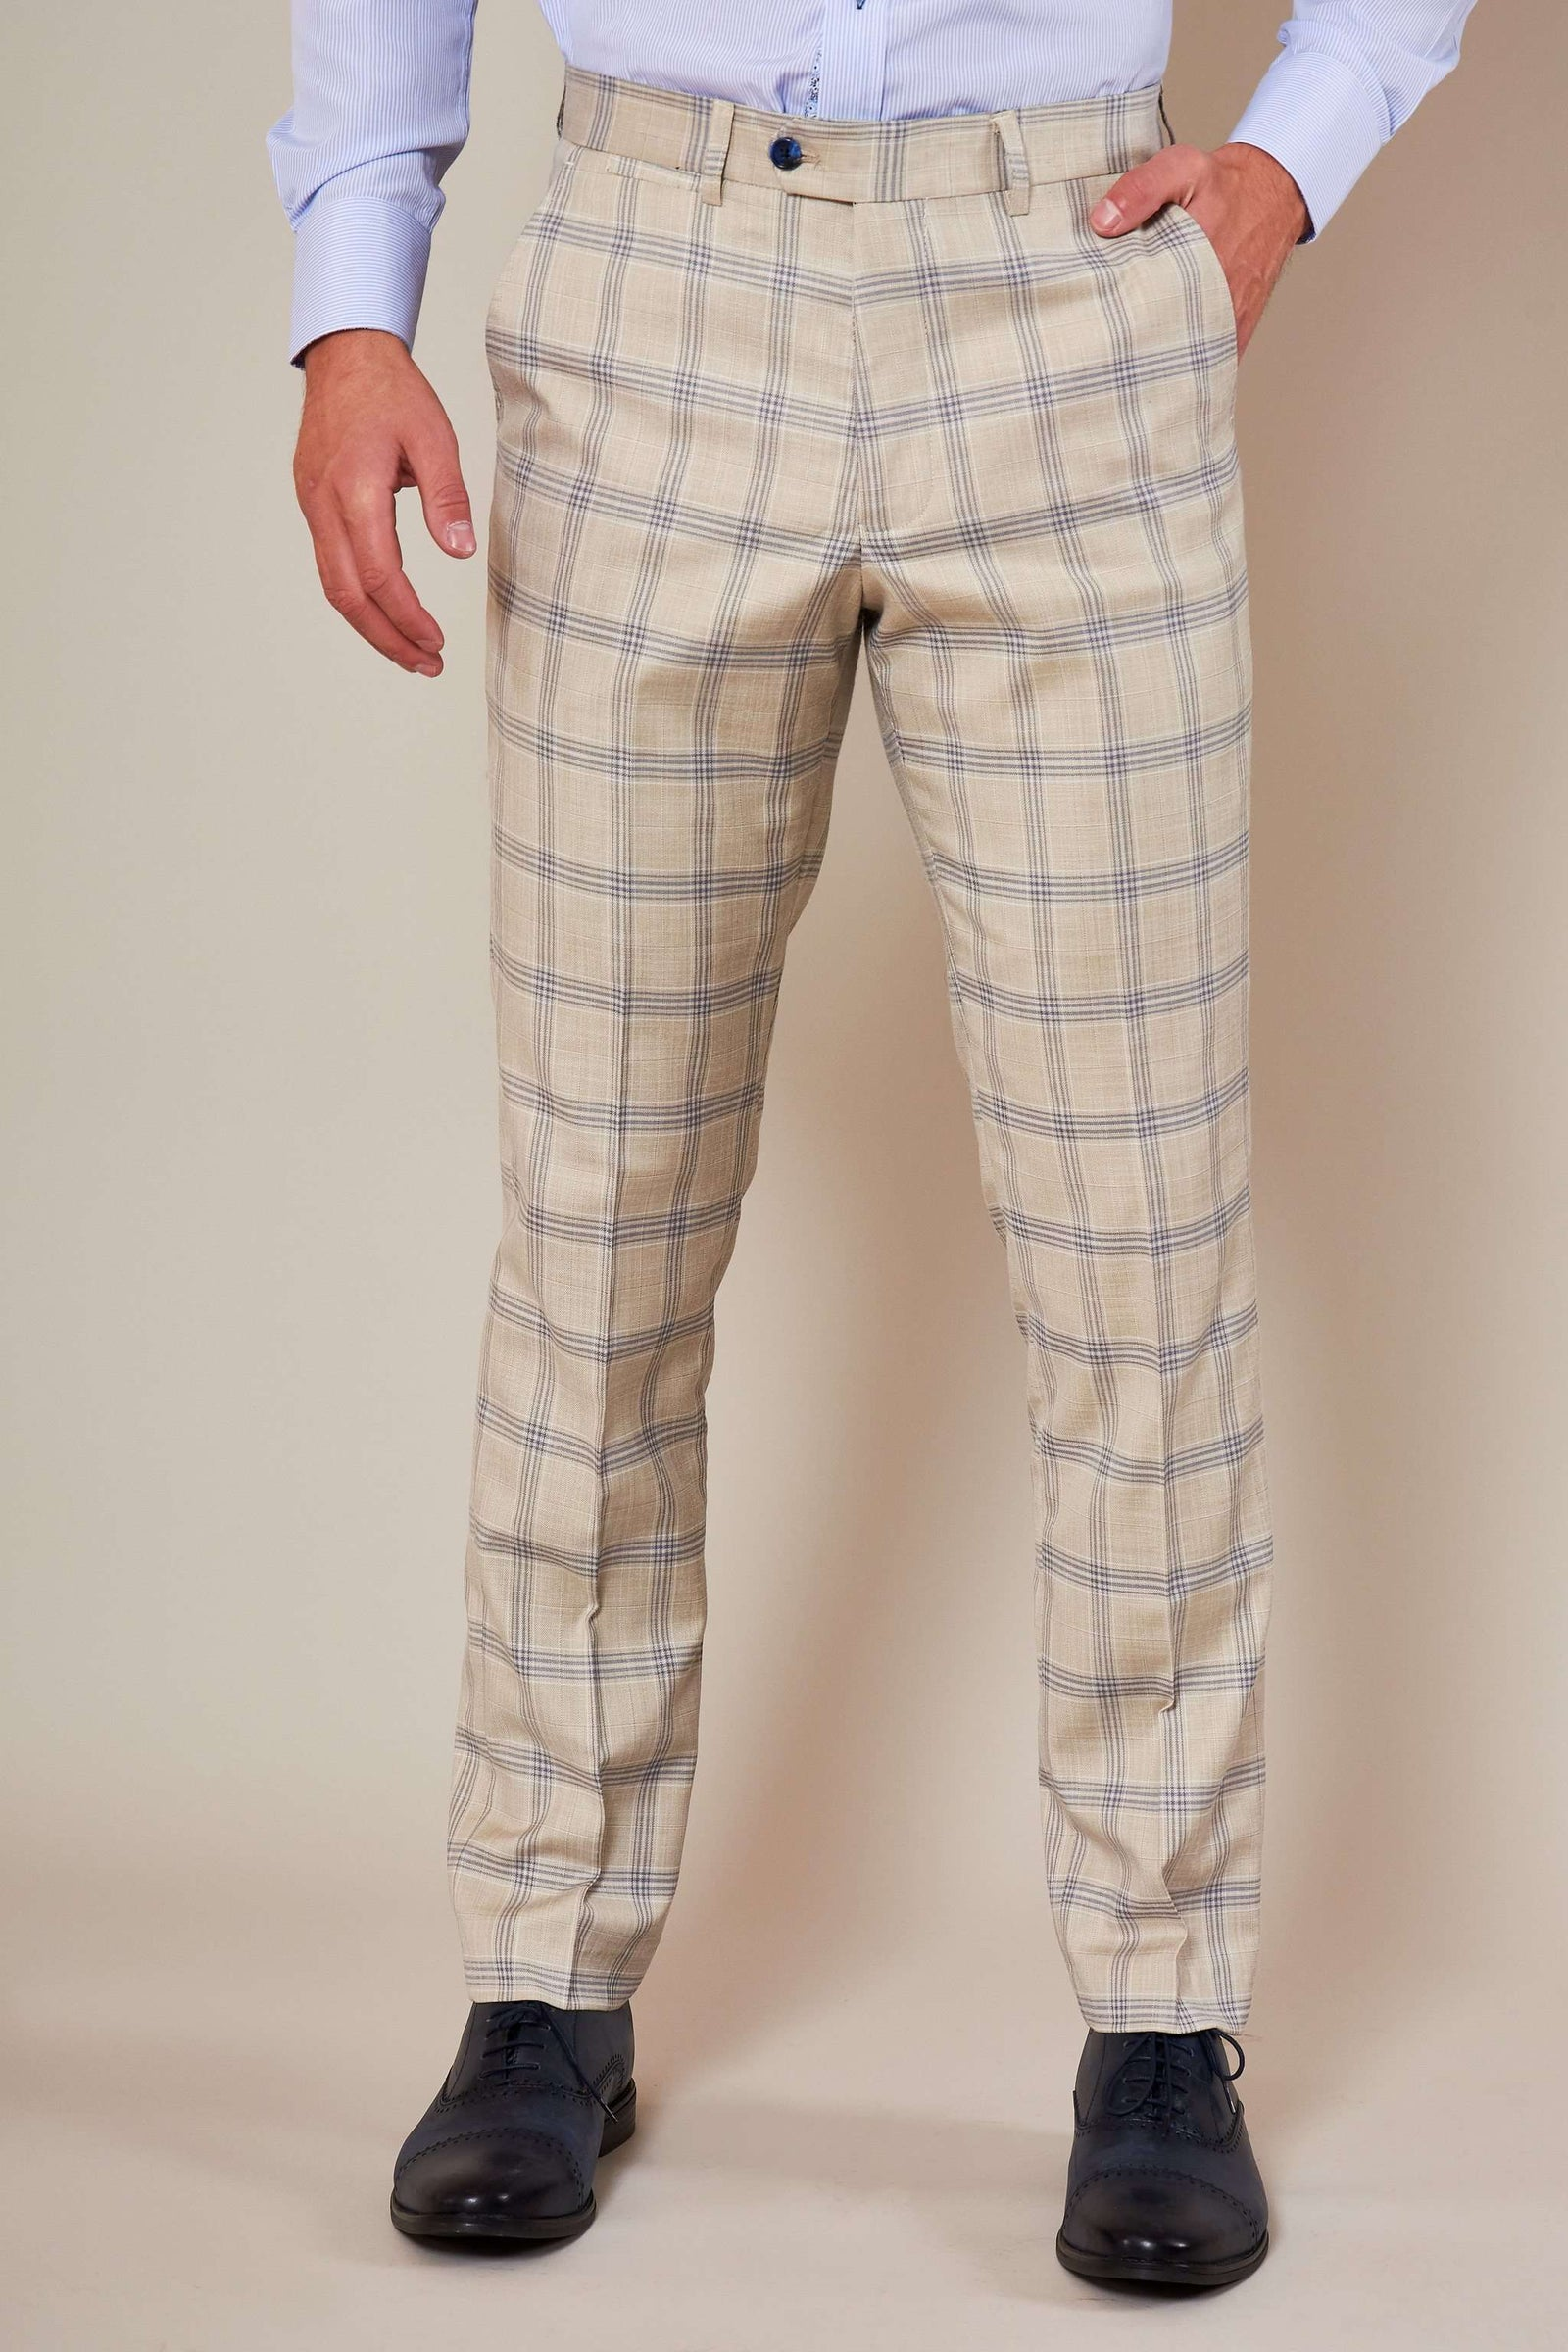 MARC DARCY Buxton Check Trousers - Revolver Menswear Bawtry